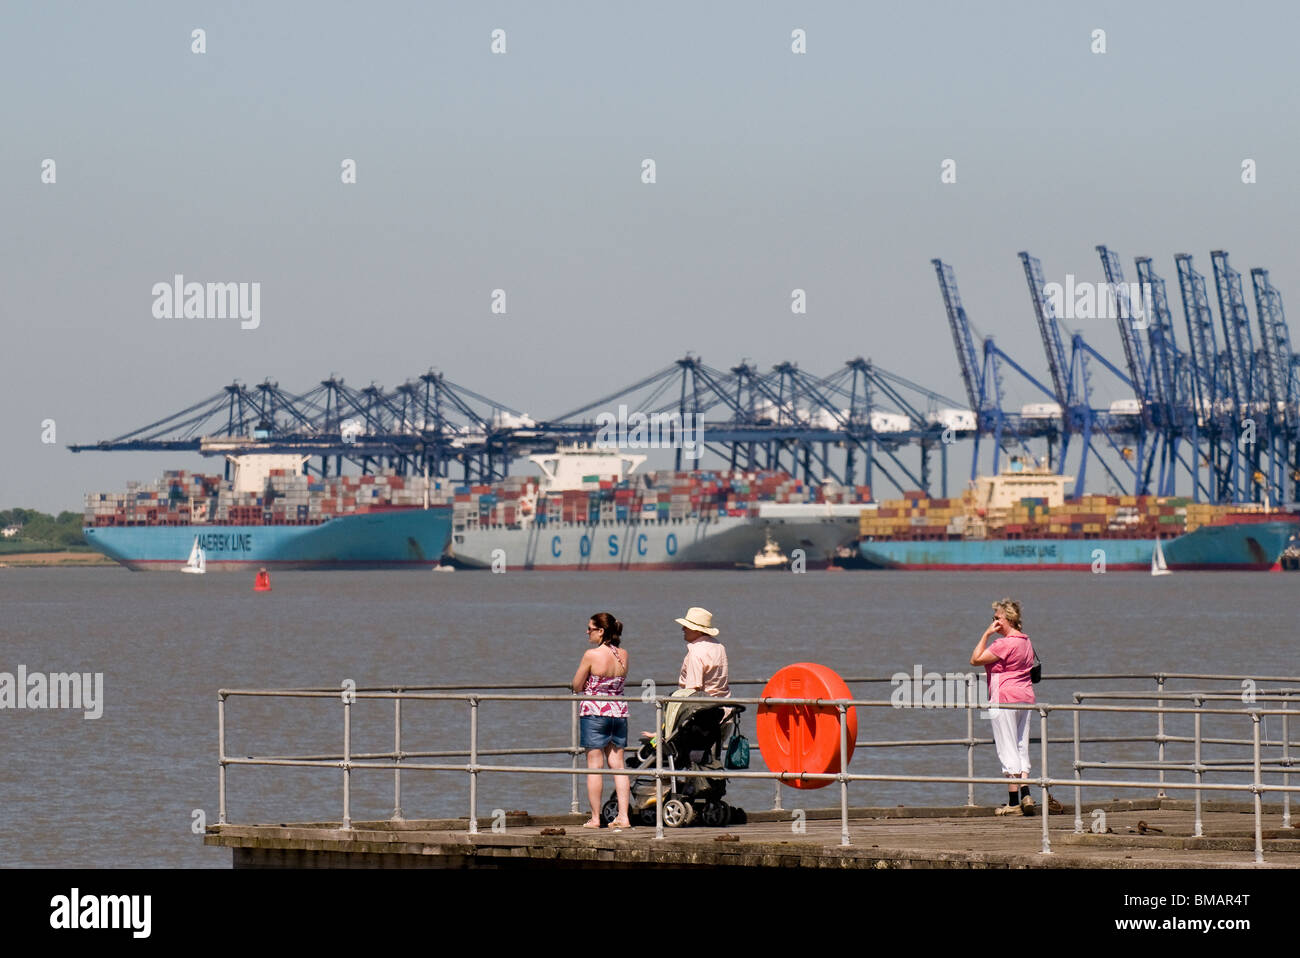 People standing on a jetty near the Port of Felixstowe in Suffolk - Stock Image